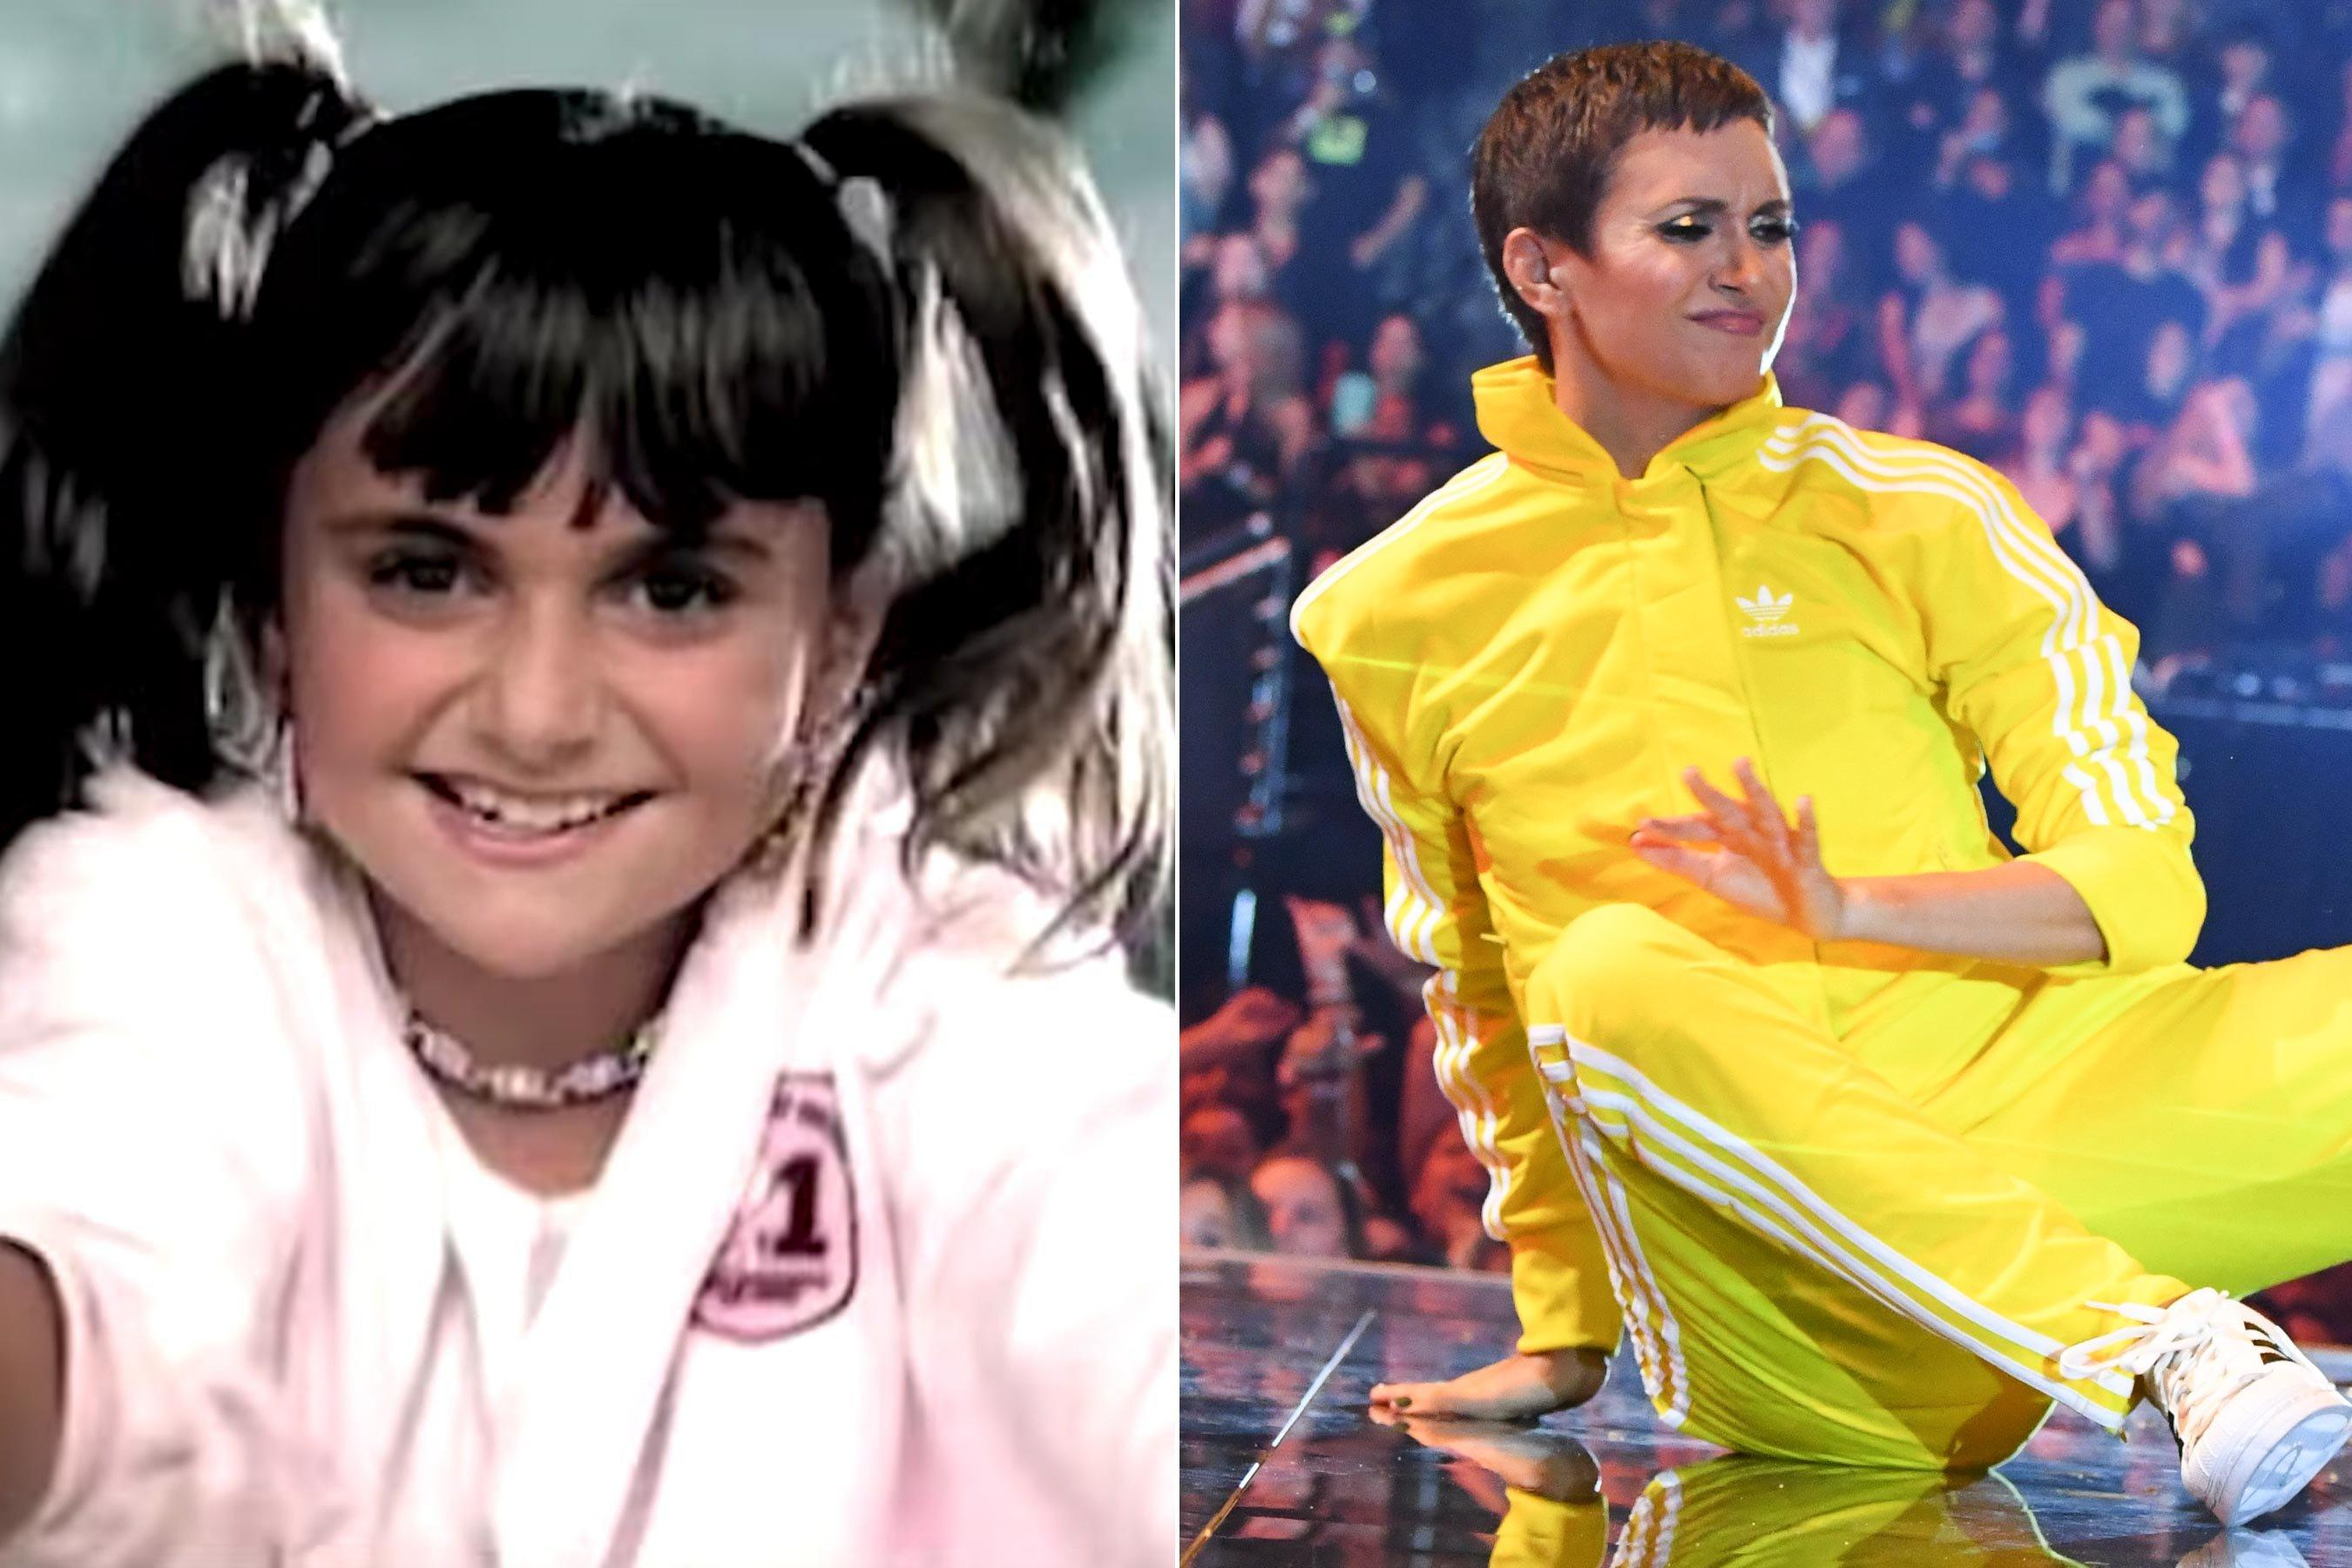 Missy Elliott Brings Out Grown Up Alyson Stoner Girl From Work It Video During Epic Vmas Medley Performance